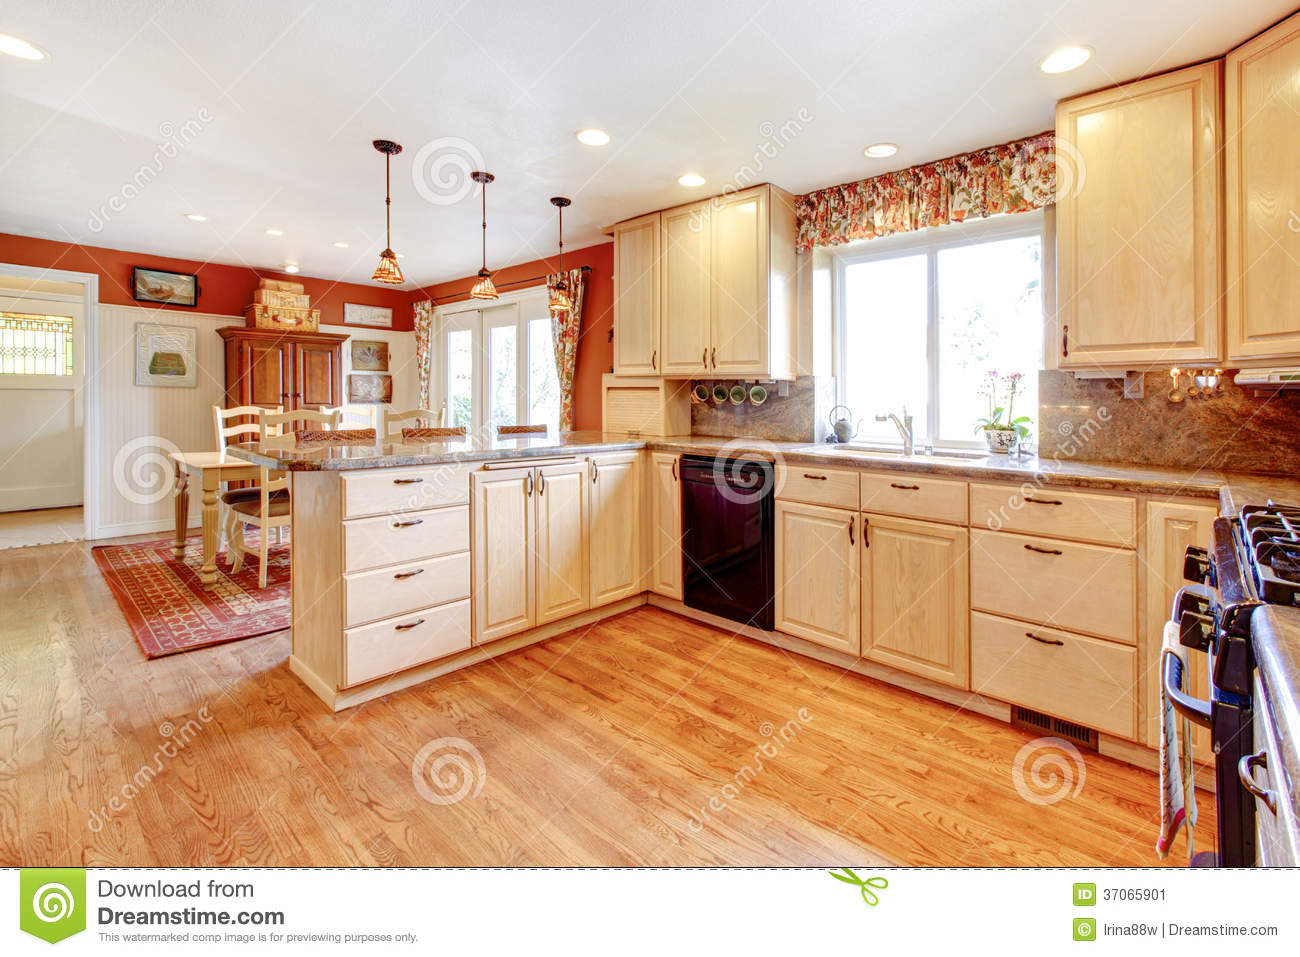 Pretty Bright Small Kitchen Color For Apartment Simple Warm Colors Kitchen Room With A Small Dining Area Stock Image